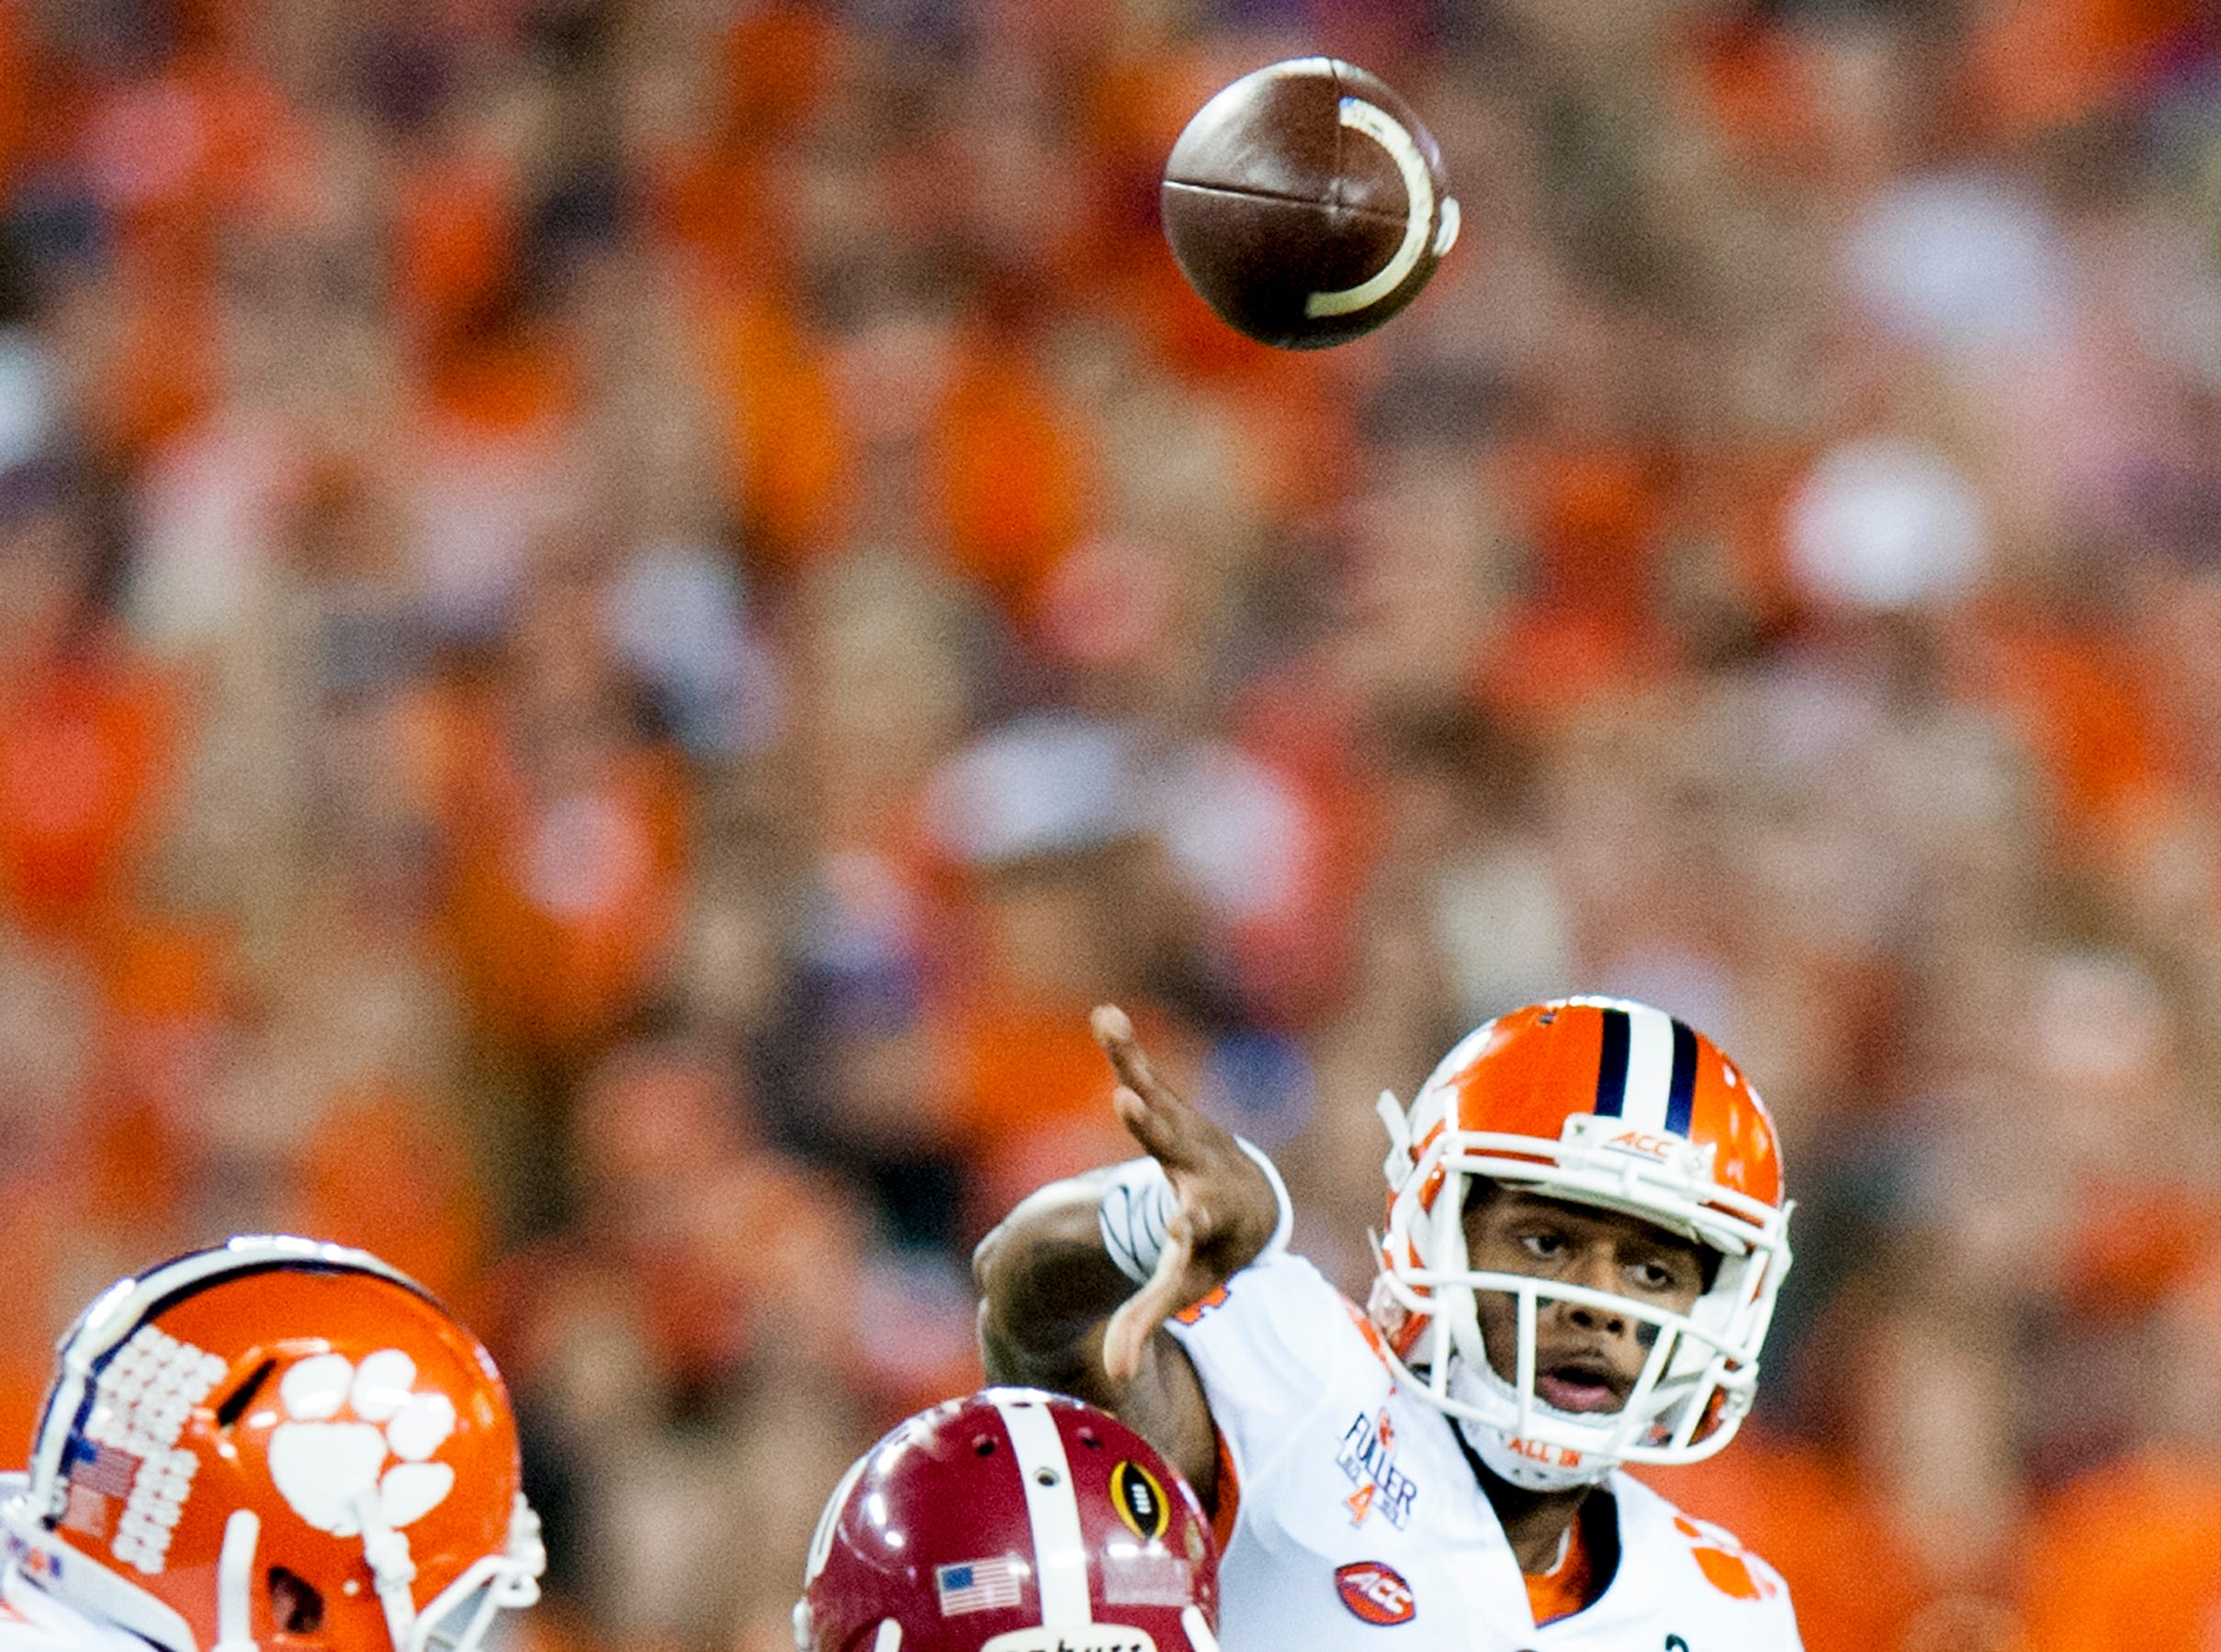 Clemson quarterback Deshaun Watson (4) throws against Alabama linebacker Reuben Foster (10) in first half action of the College Football Playoff National Championship Game at Raymond James Stadium in Tampa, Fla. on Monday January 9, 2017.